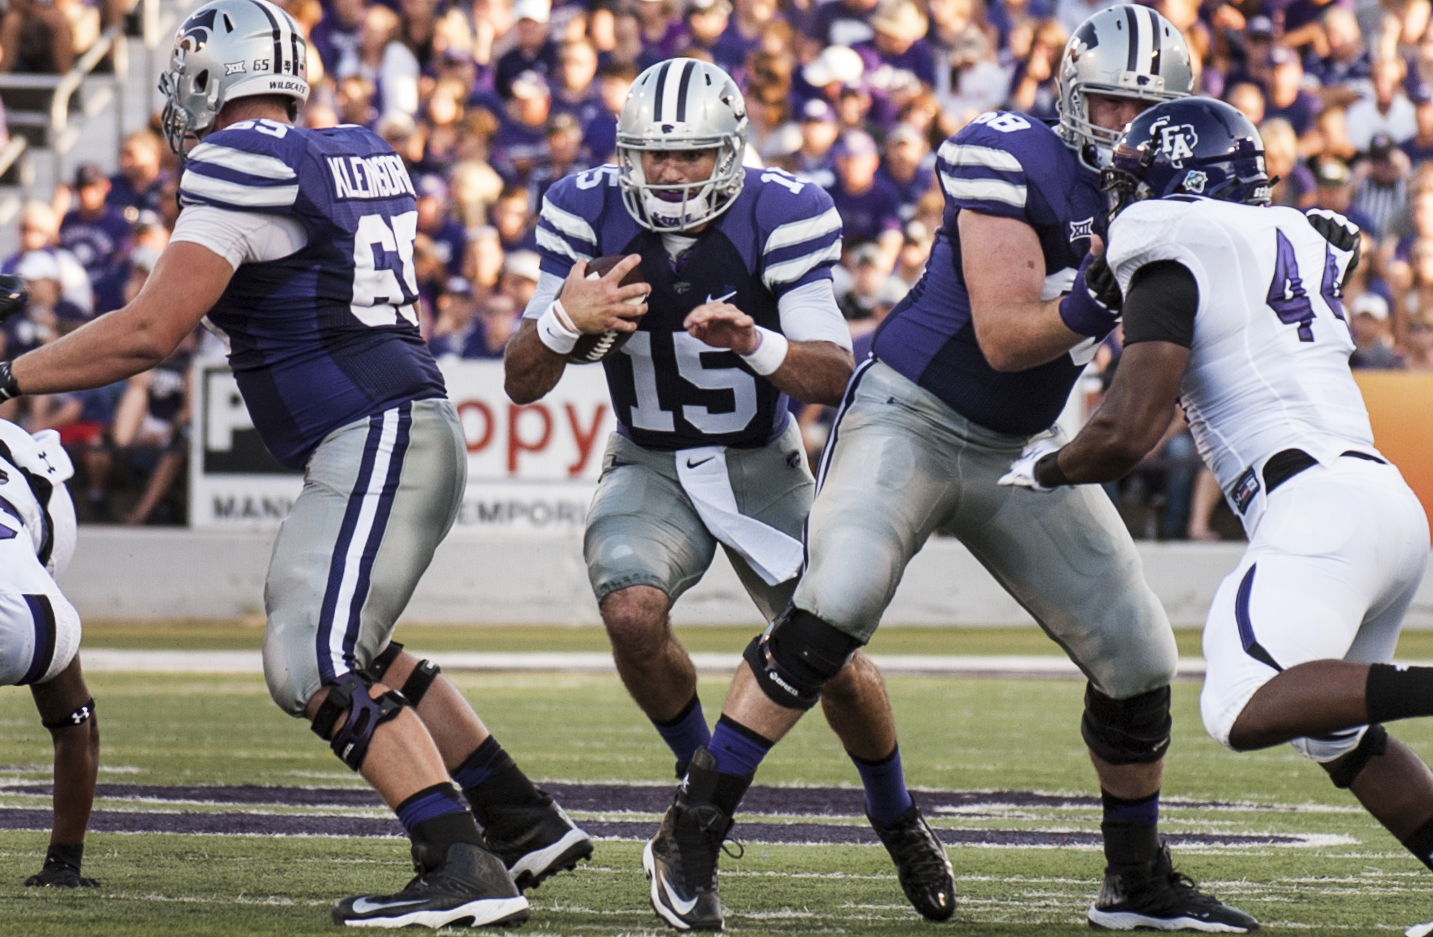 K-State vs Stephen F. Austin in photos